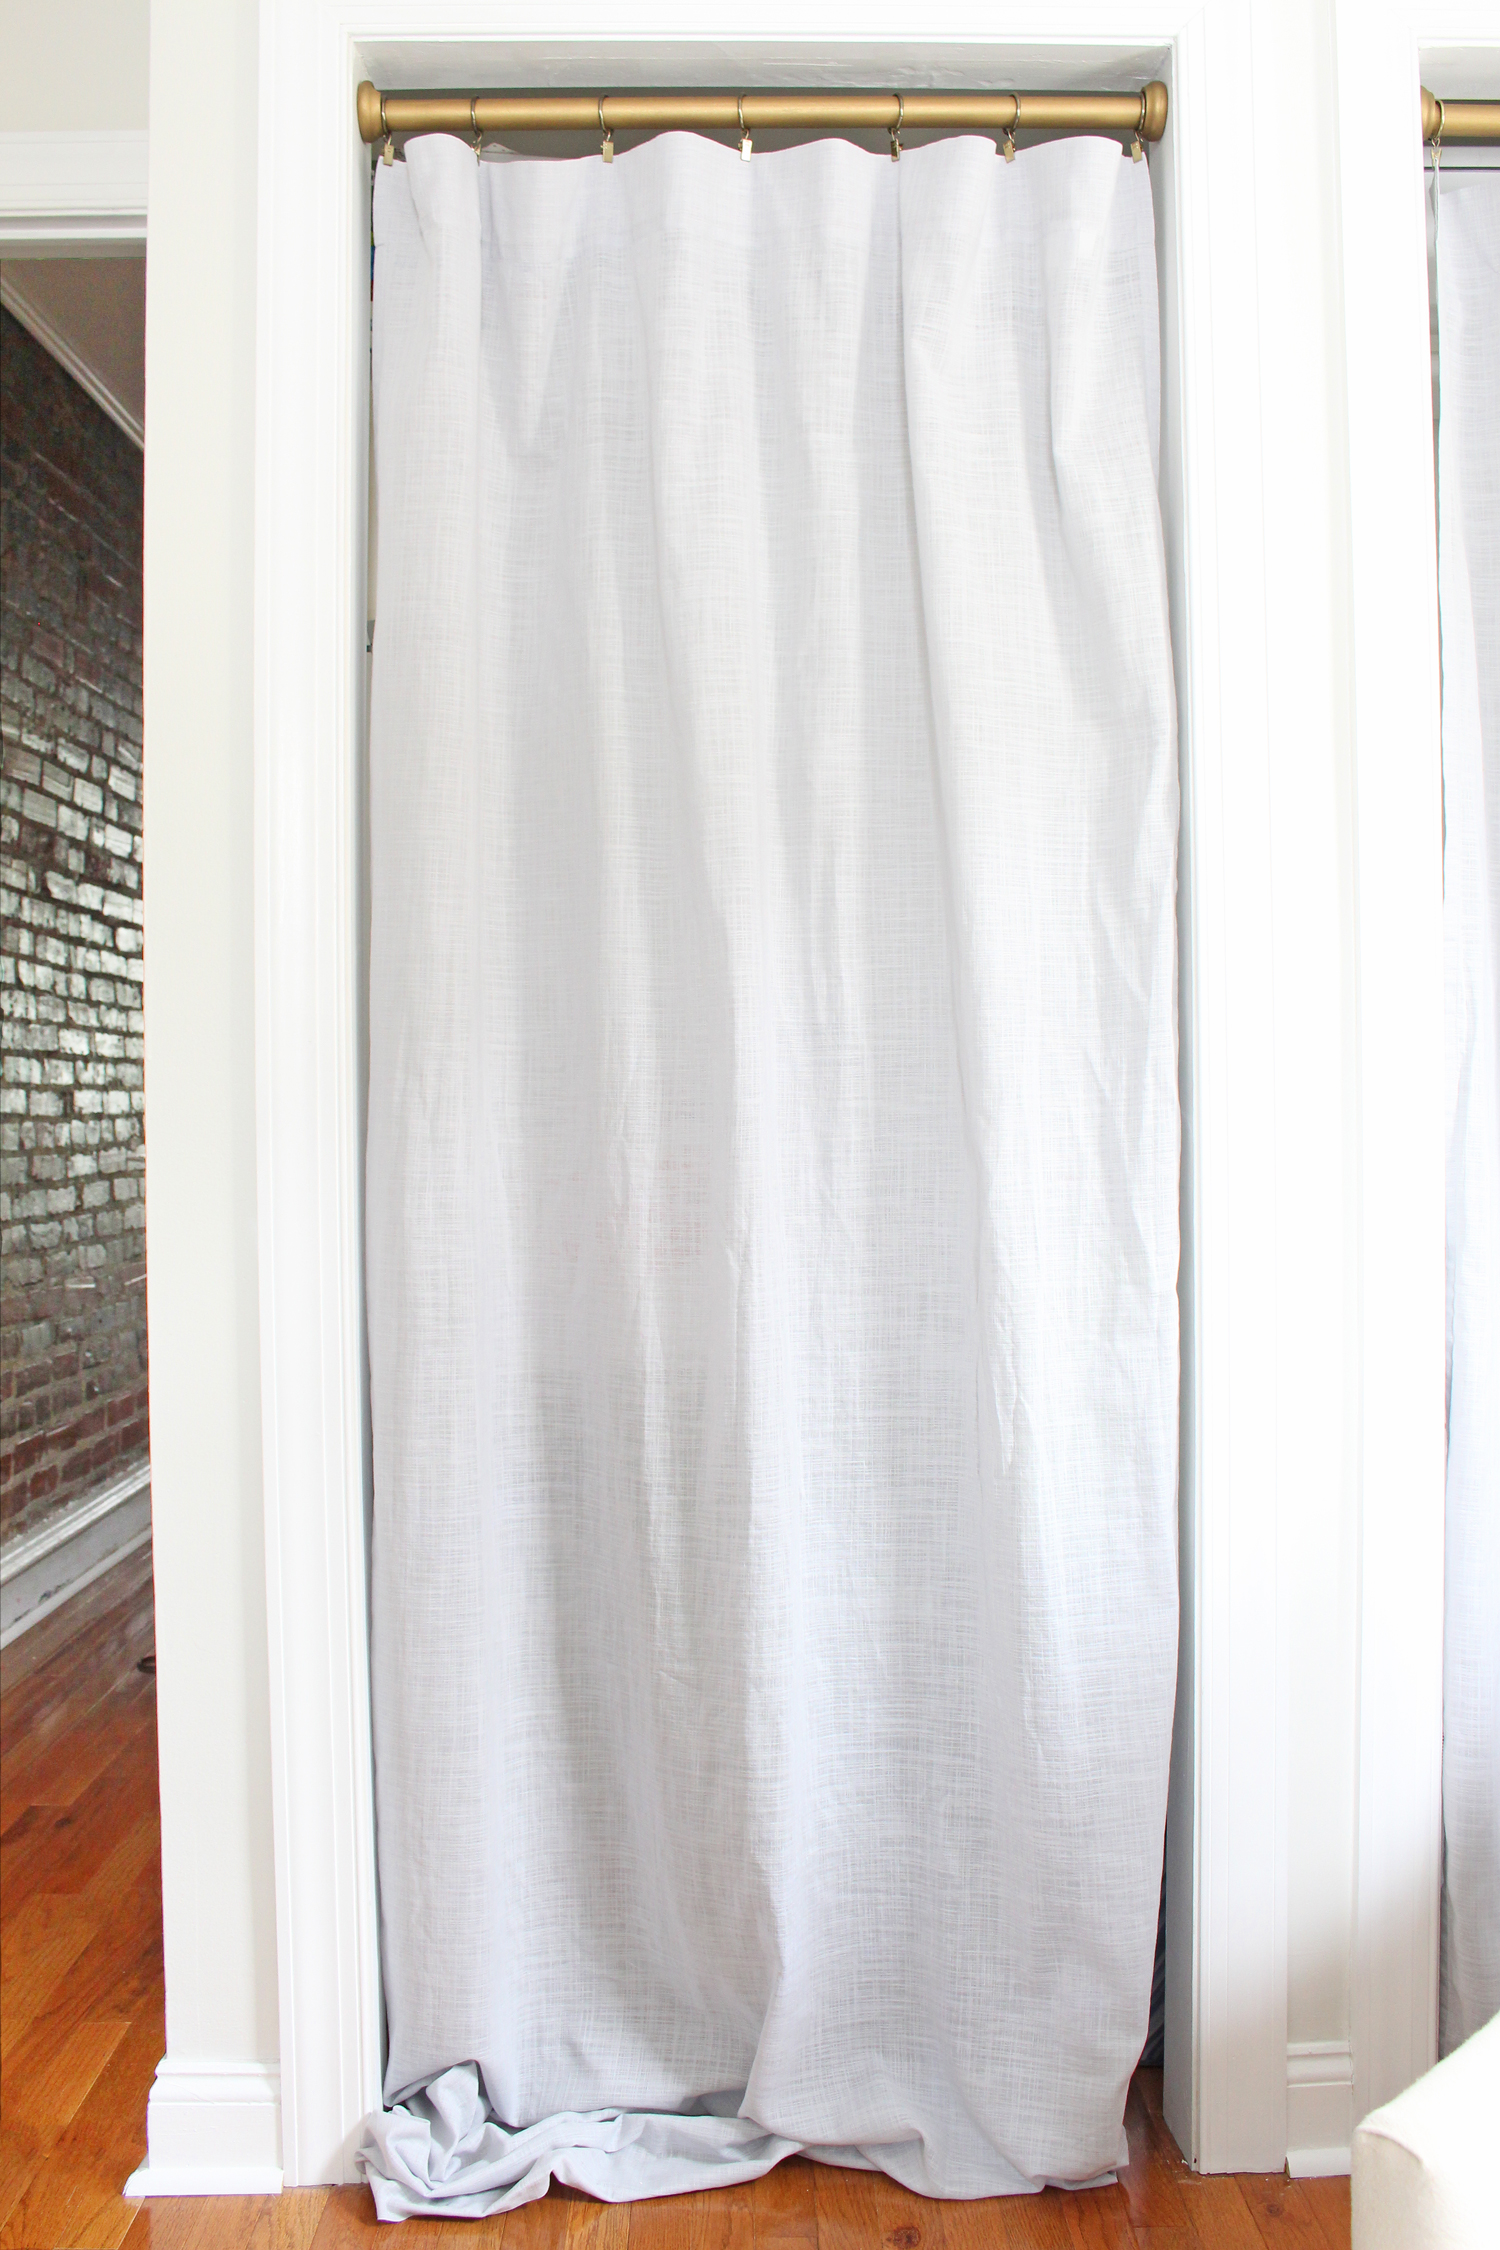 Using a curtain as an alternative to bifold closet doors (prior to hemming curtains).